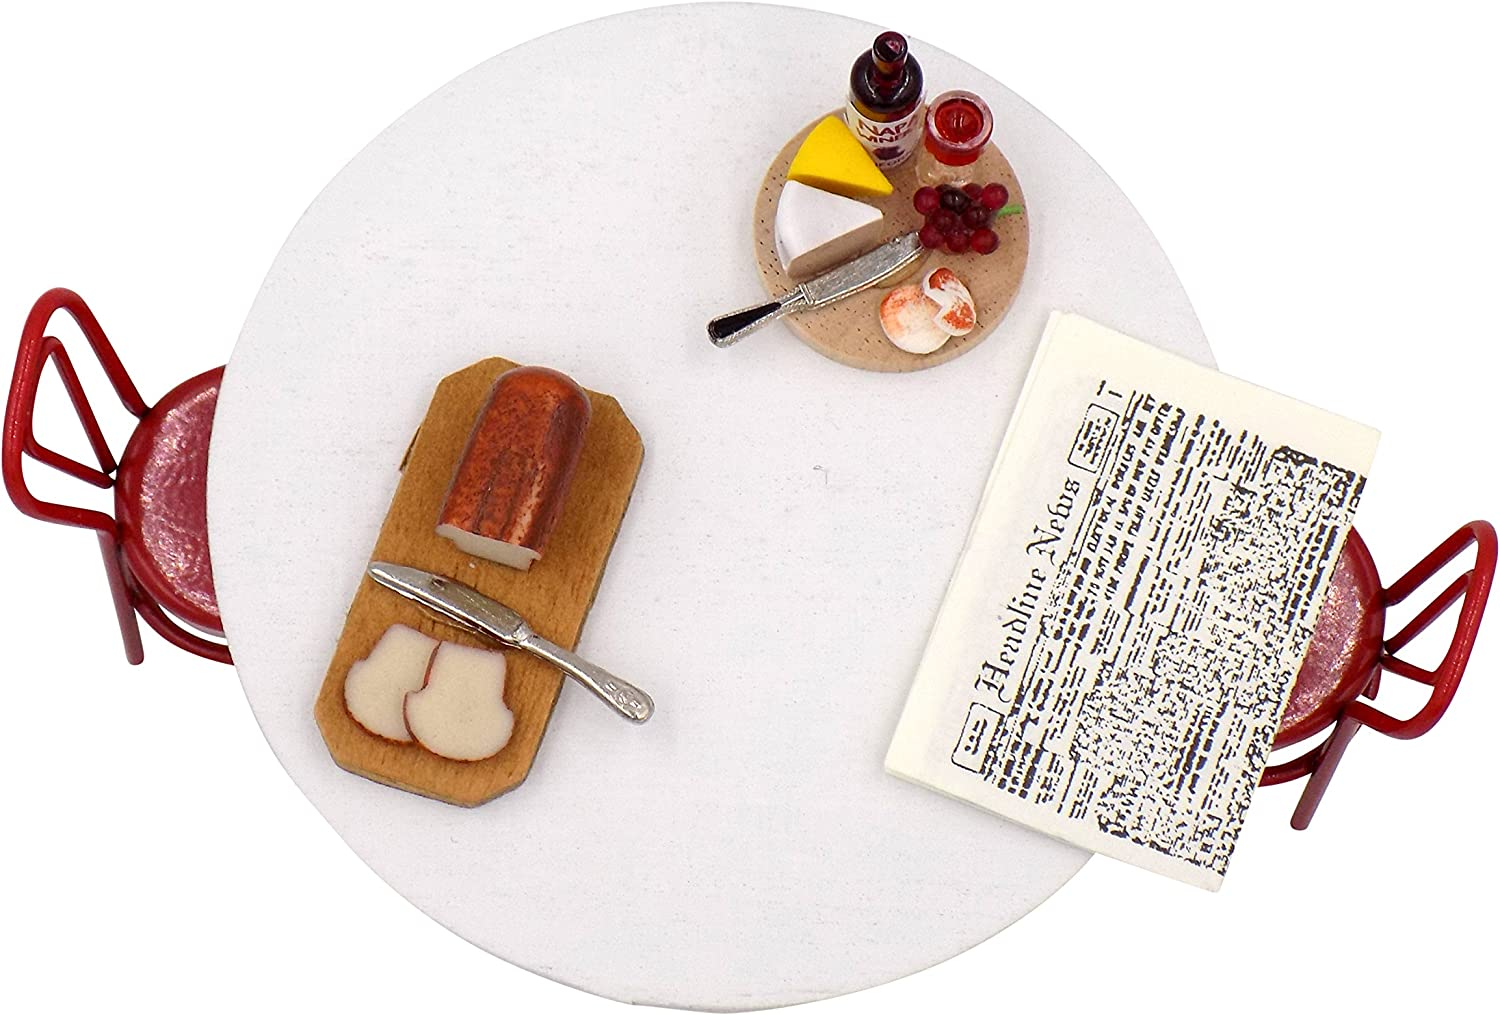 Bread Board Wine /& Cheese Plate /& Mini Newspaper Bundle for Fairy Gardens /& Doll Houses Collectibles and Video Miniature Dollhouse Furniture Round Table 2 Timeless Minis Miniatures Chair